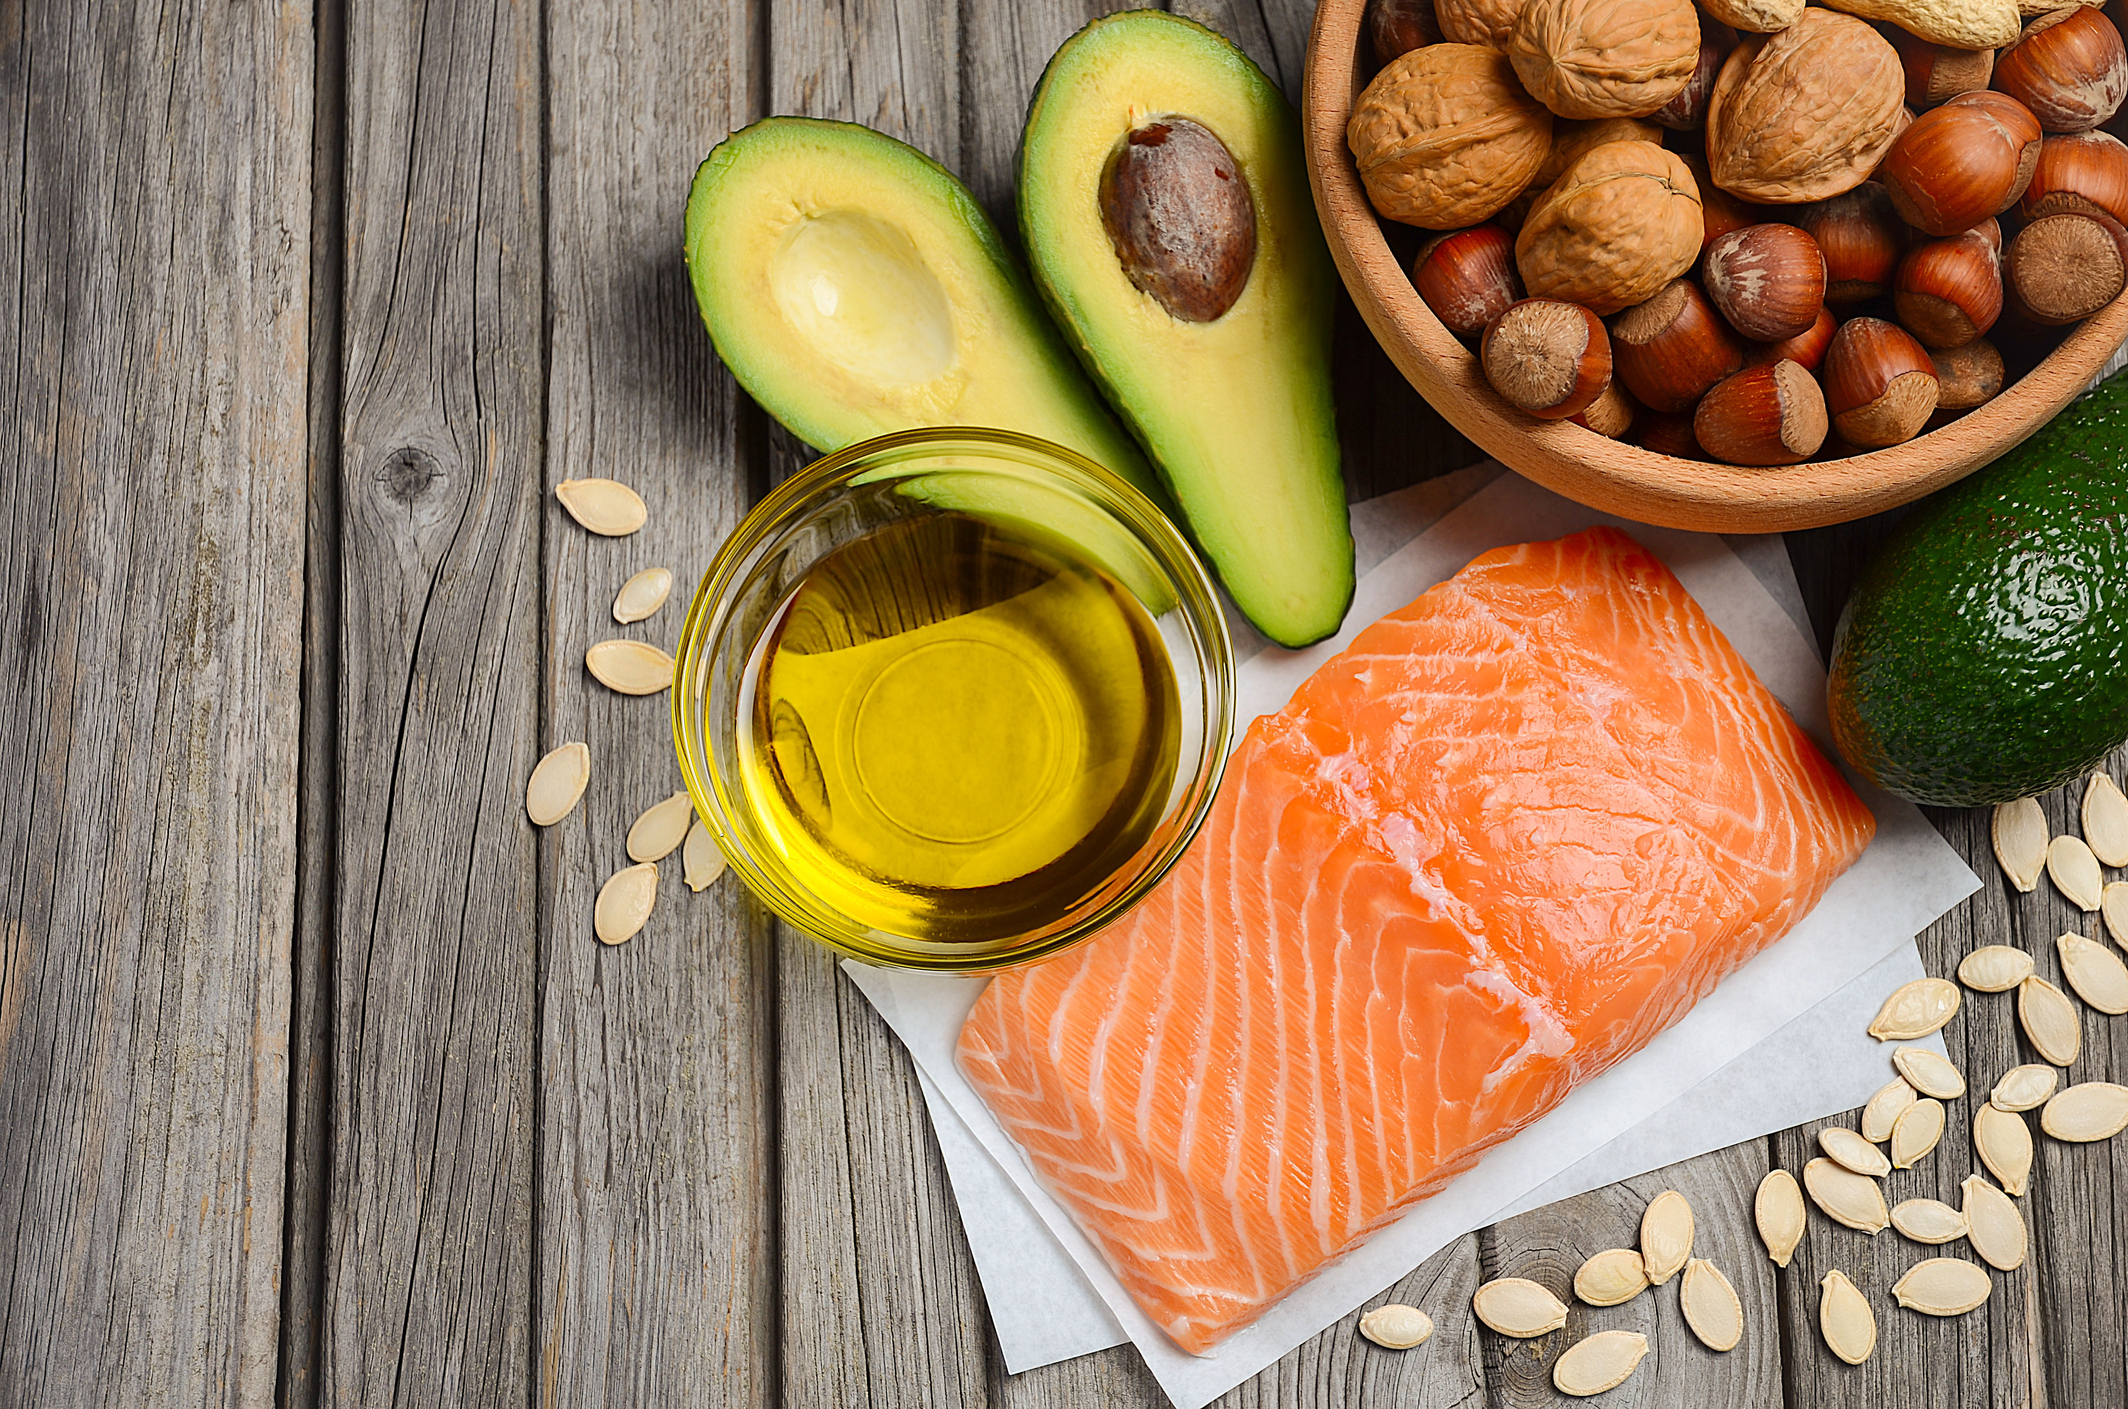 Healthy fats are featured in our Ketogenic Diet